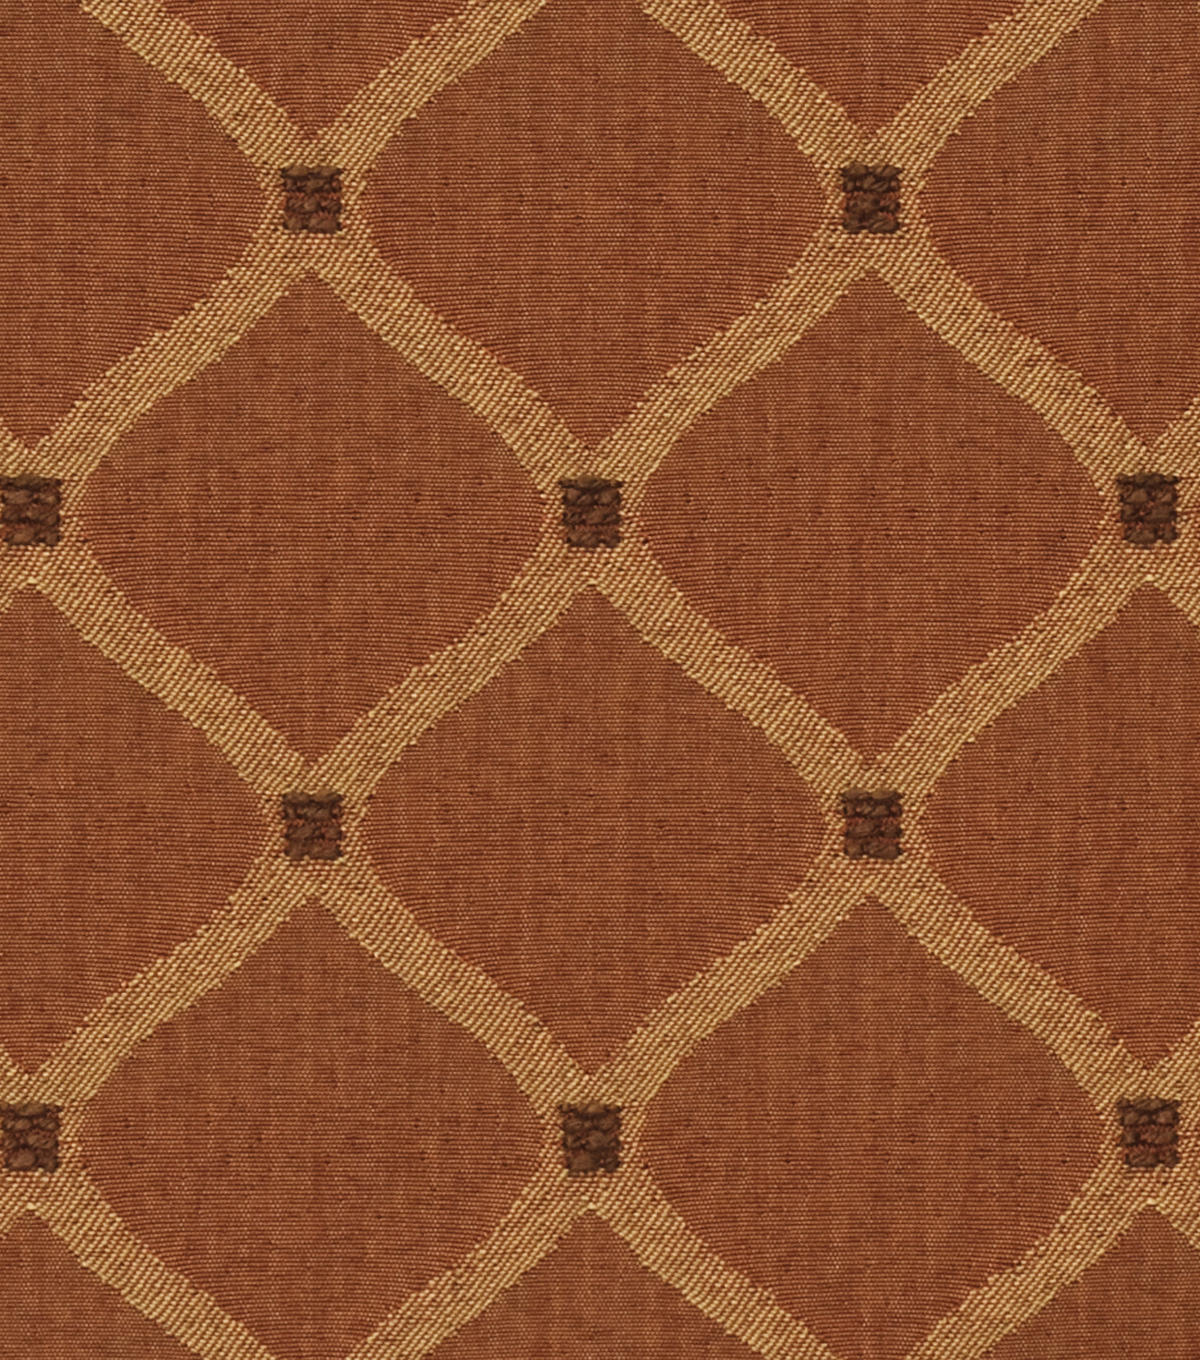 Home Decor 8\u0022x8\u0022 Fabric Swatch-Jaclyn Smith Newark-Tabasco